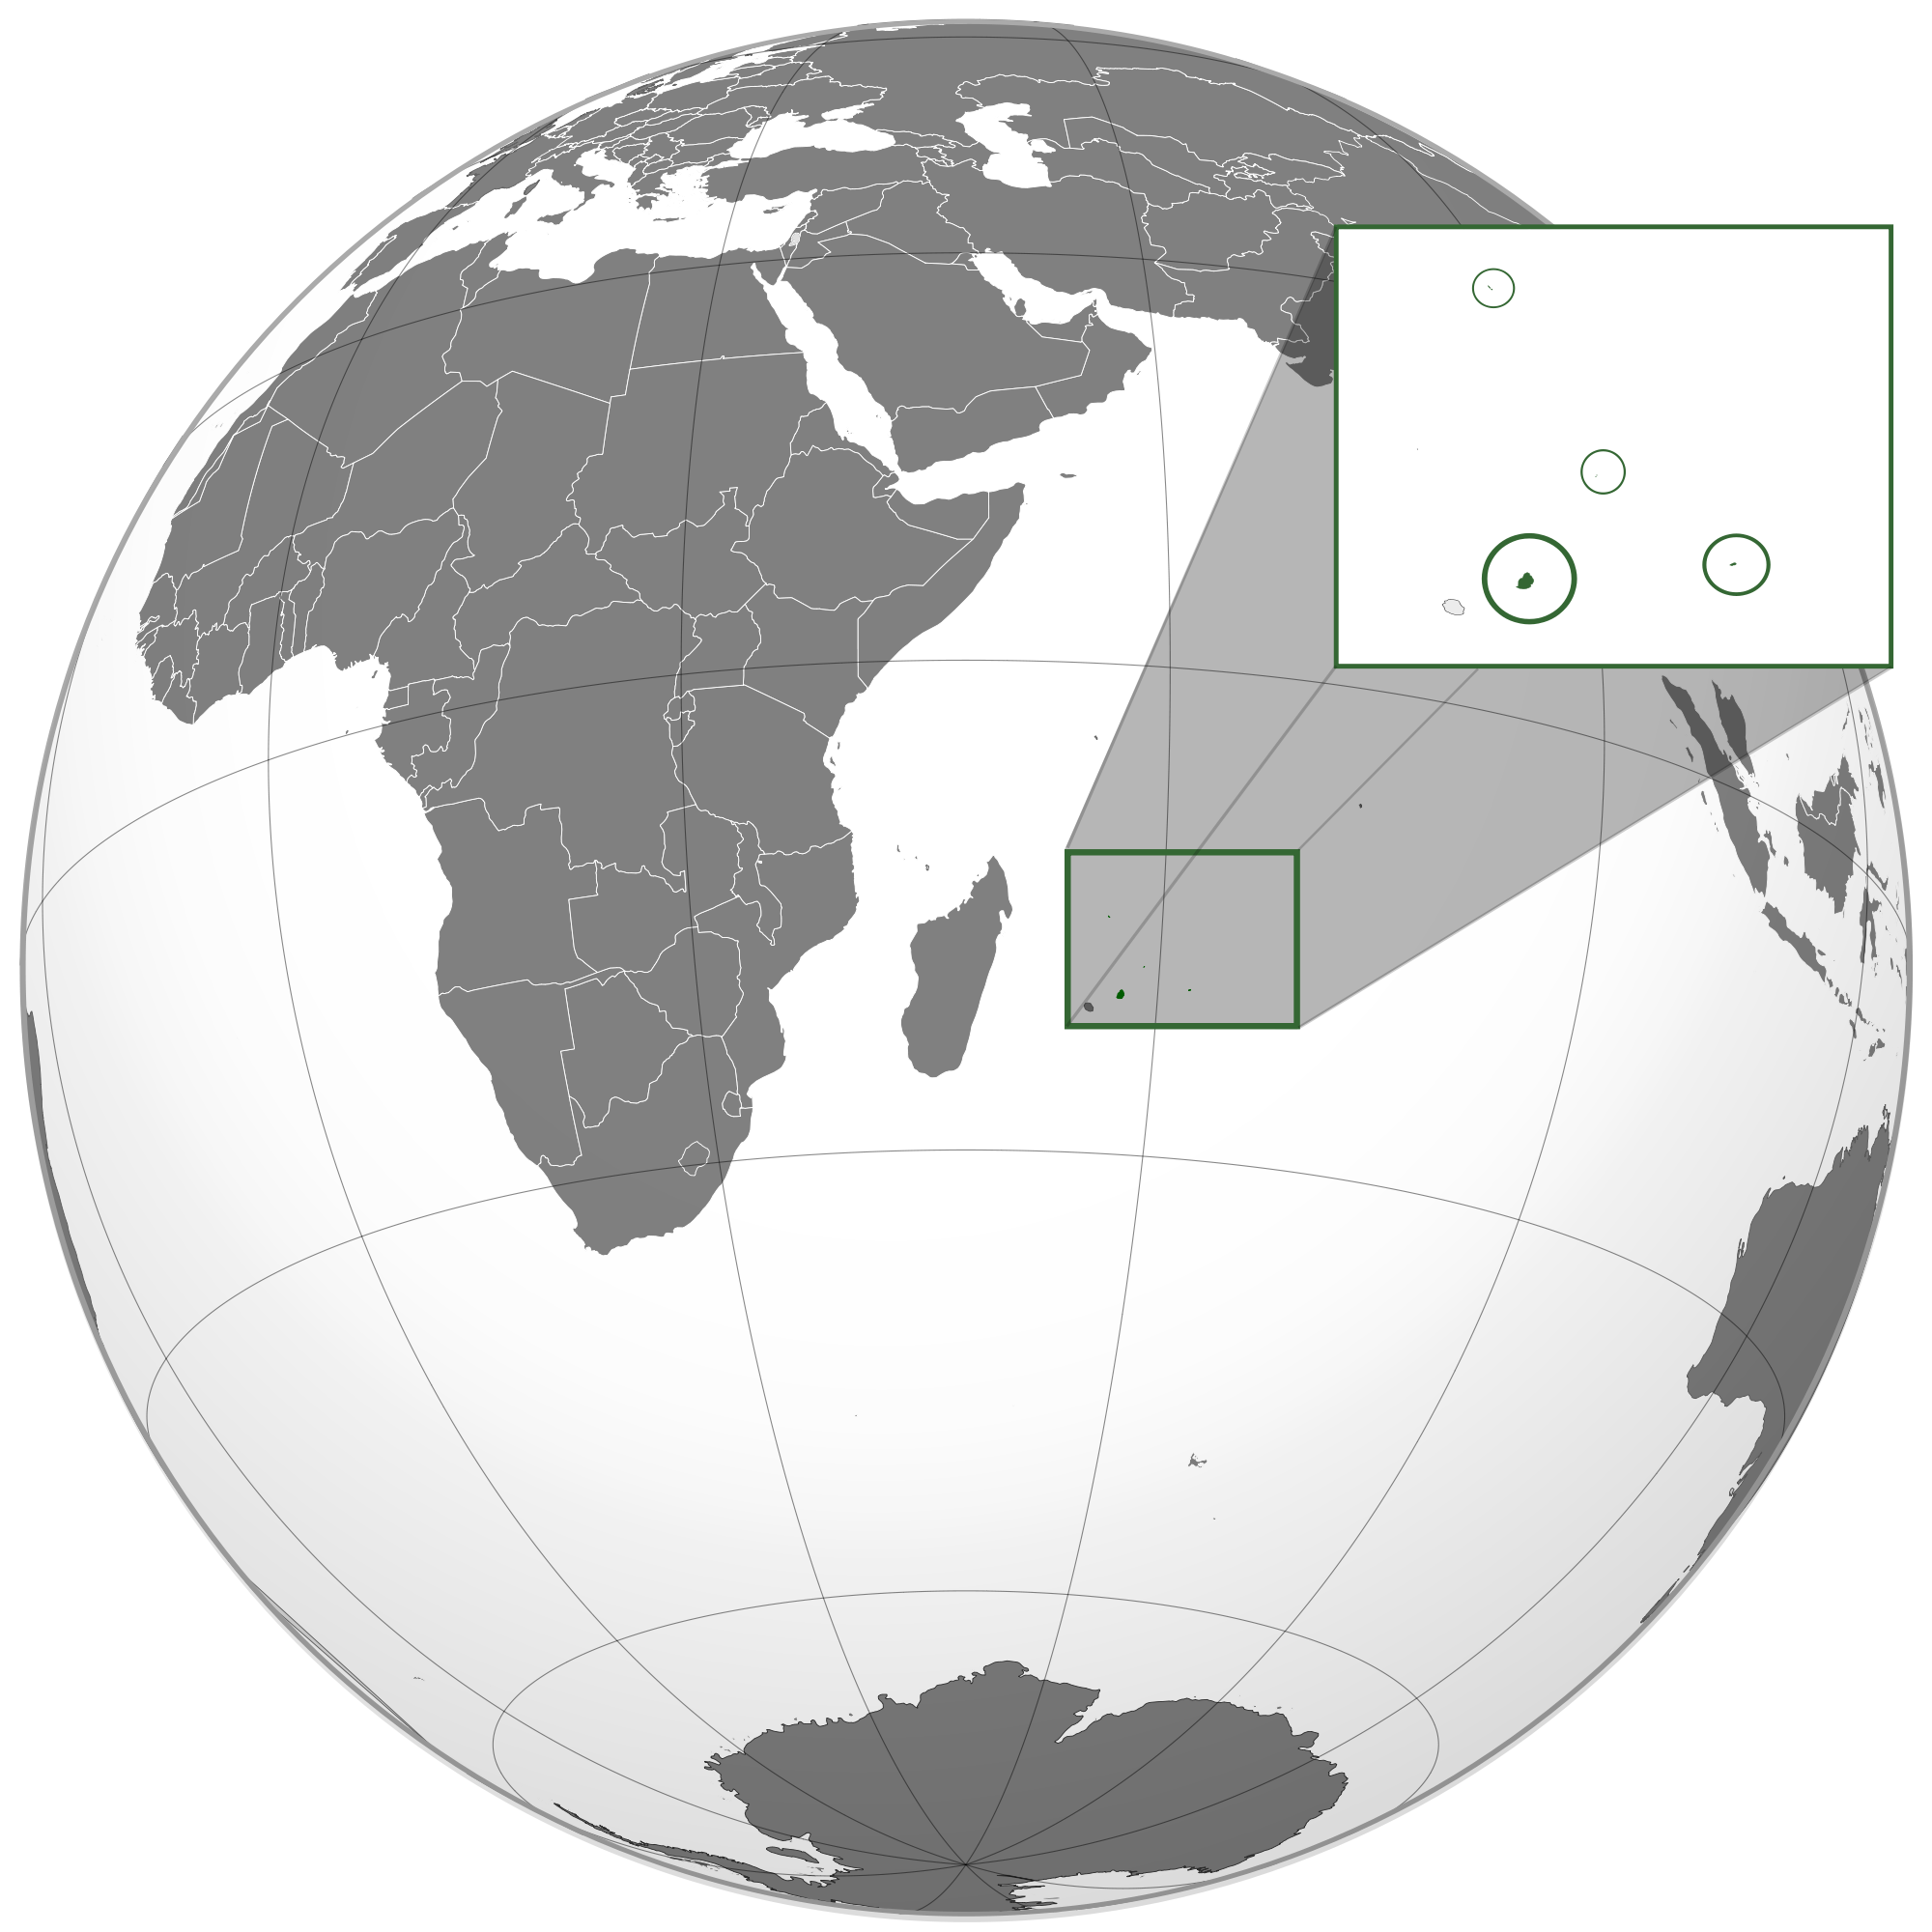 Location of the Mauritius in the World Map